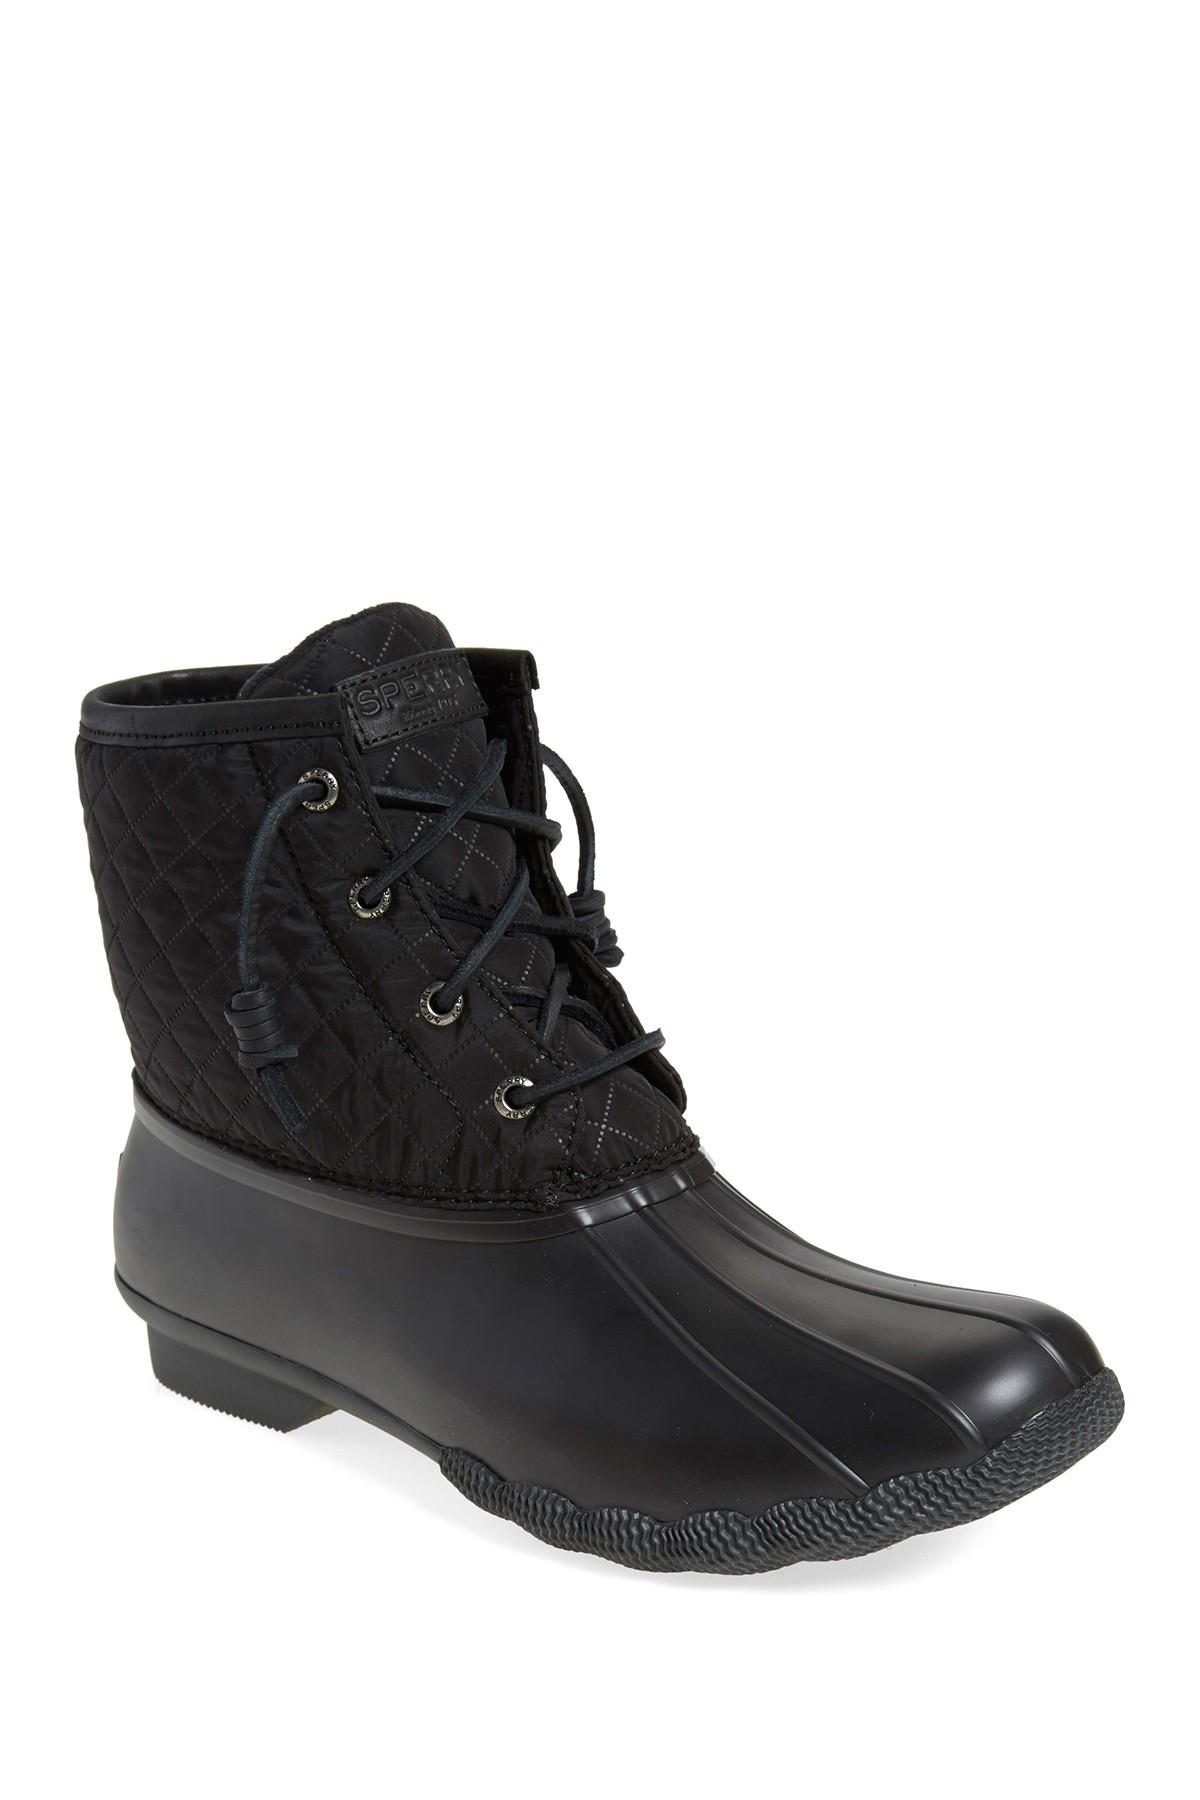 Sperry Top Sider Saltwater Quilted Duck Boot In Black Lyst